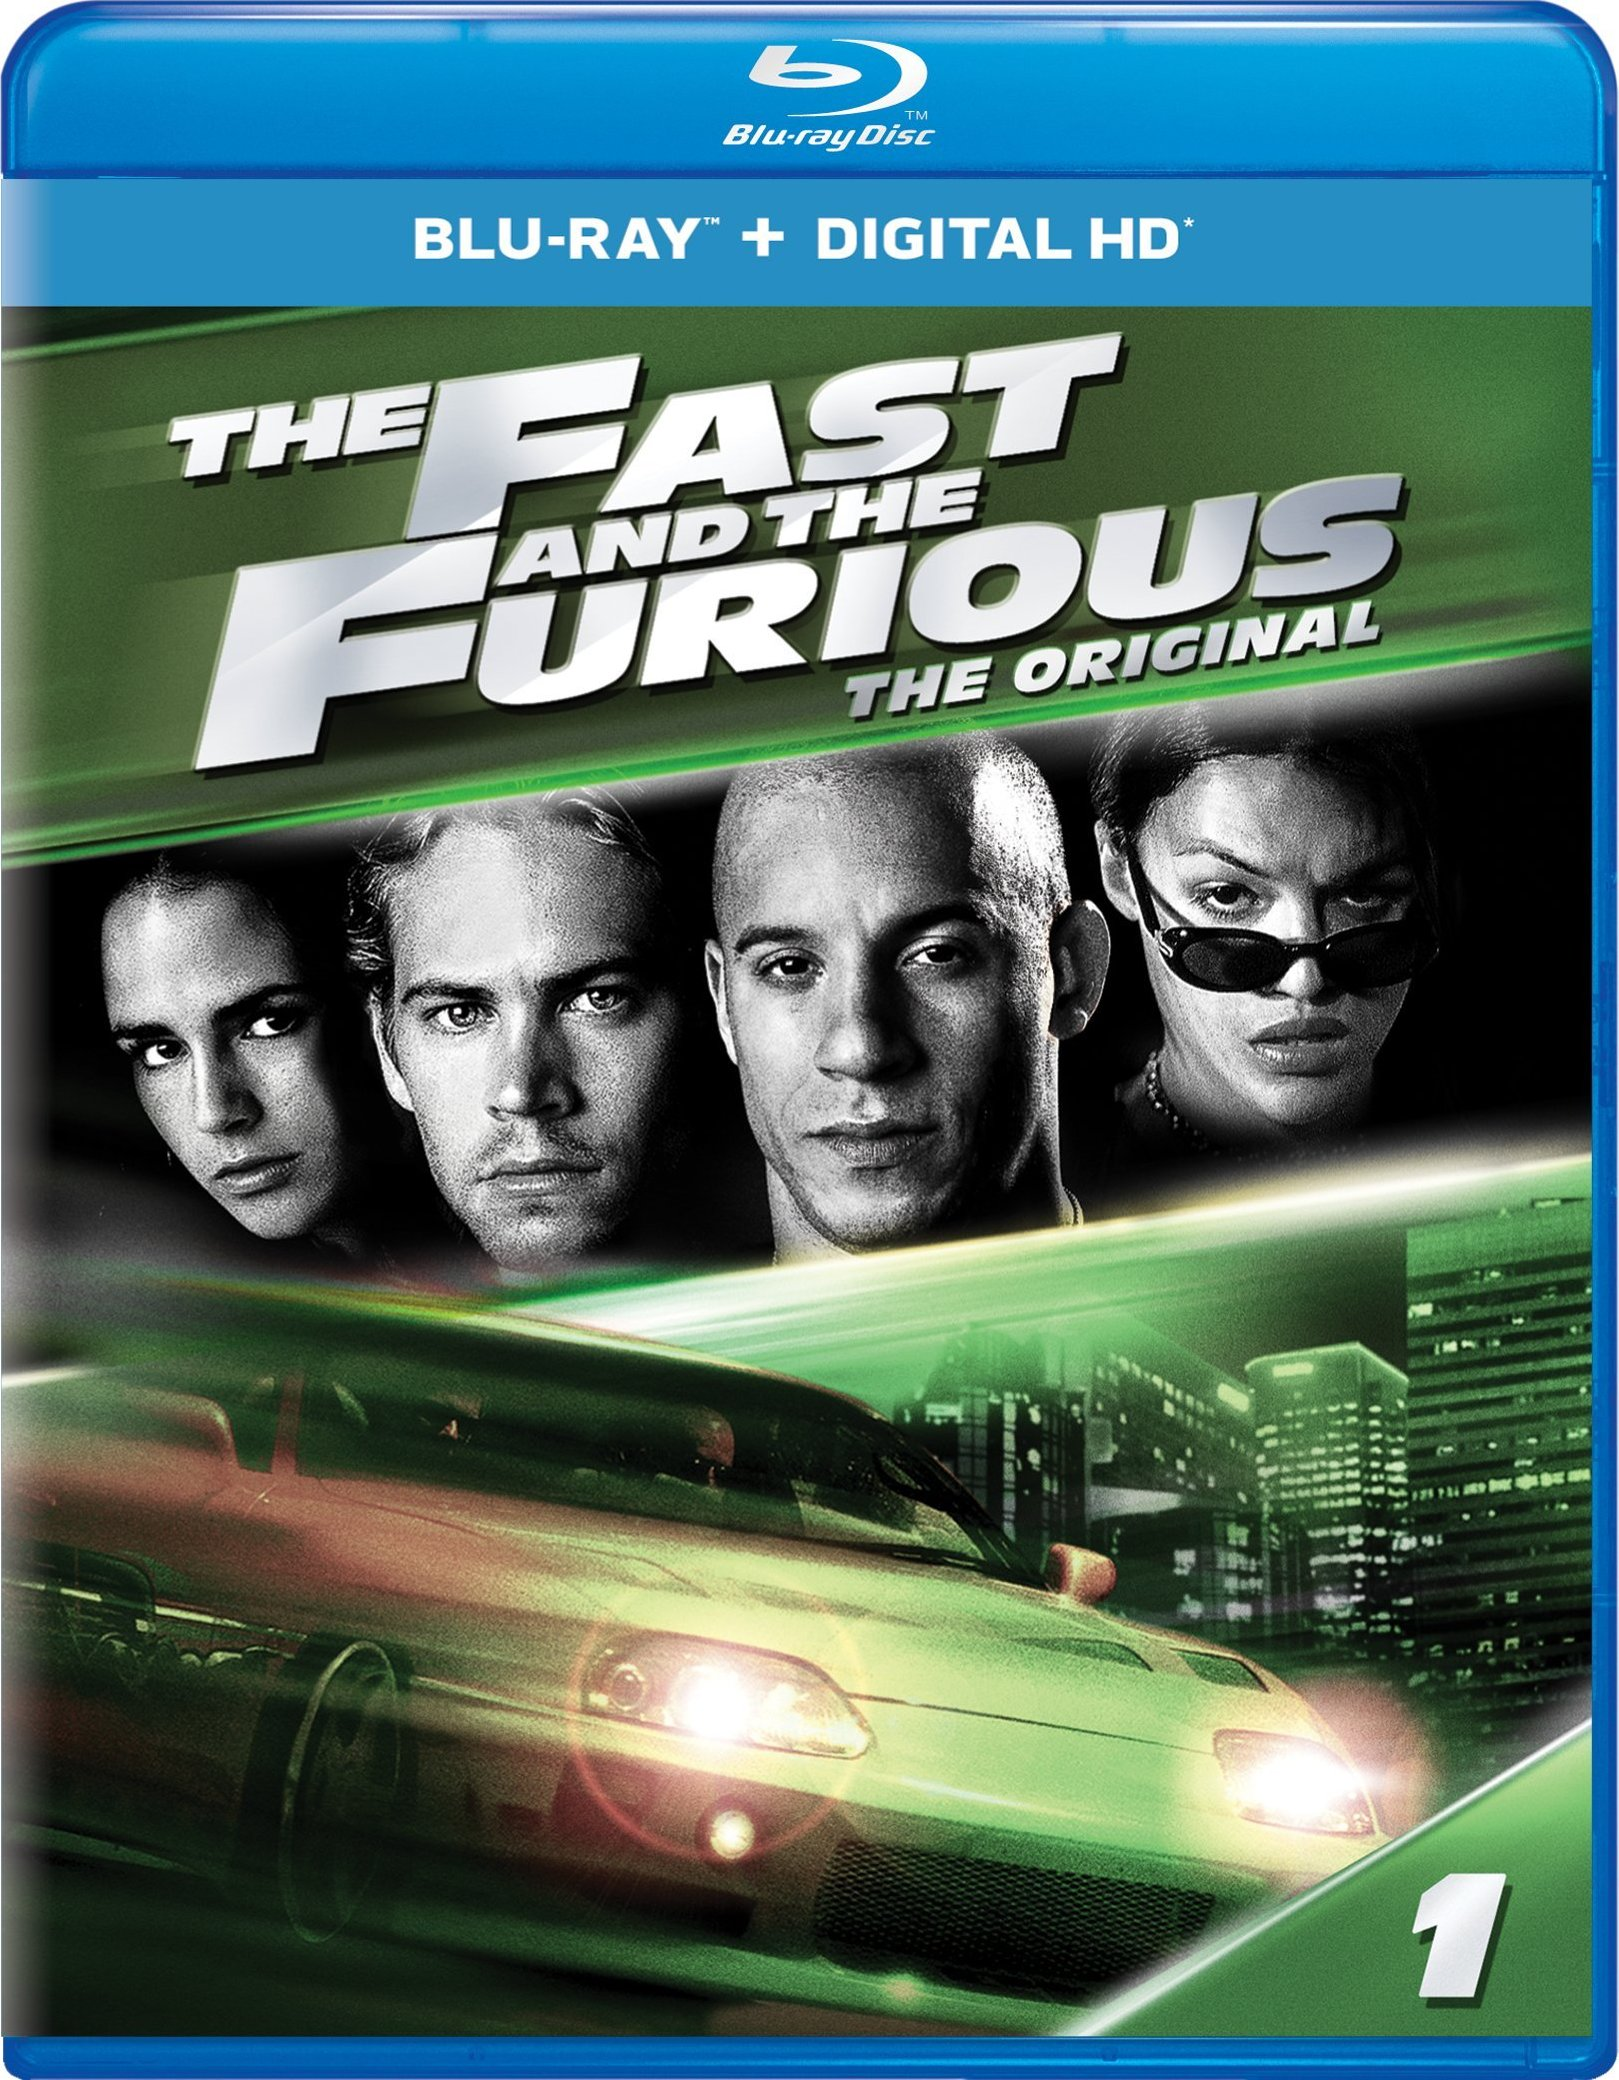 Bluray 1080p fast Furious Complete collection